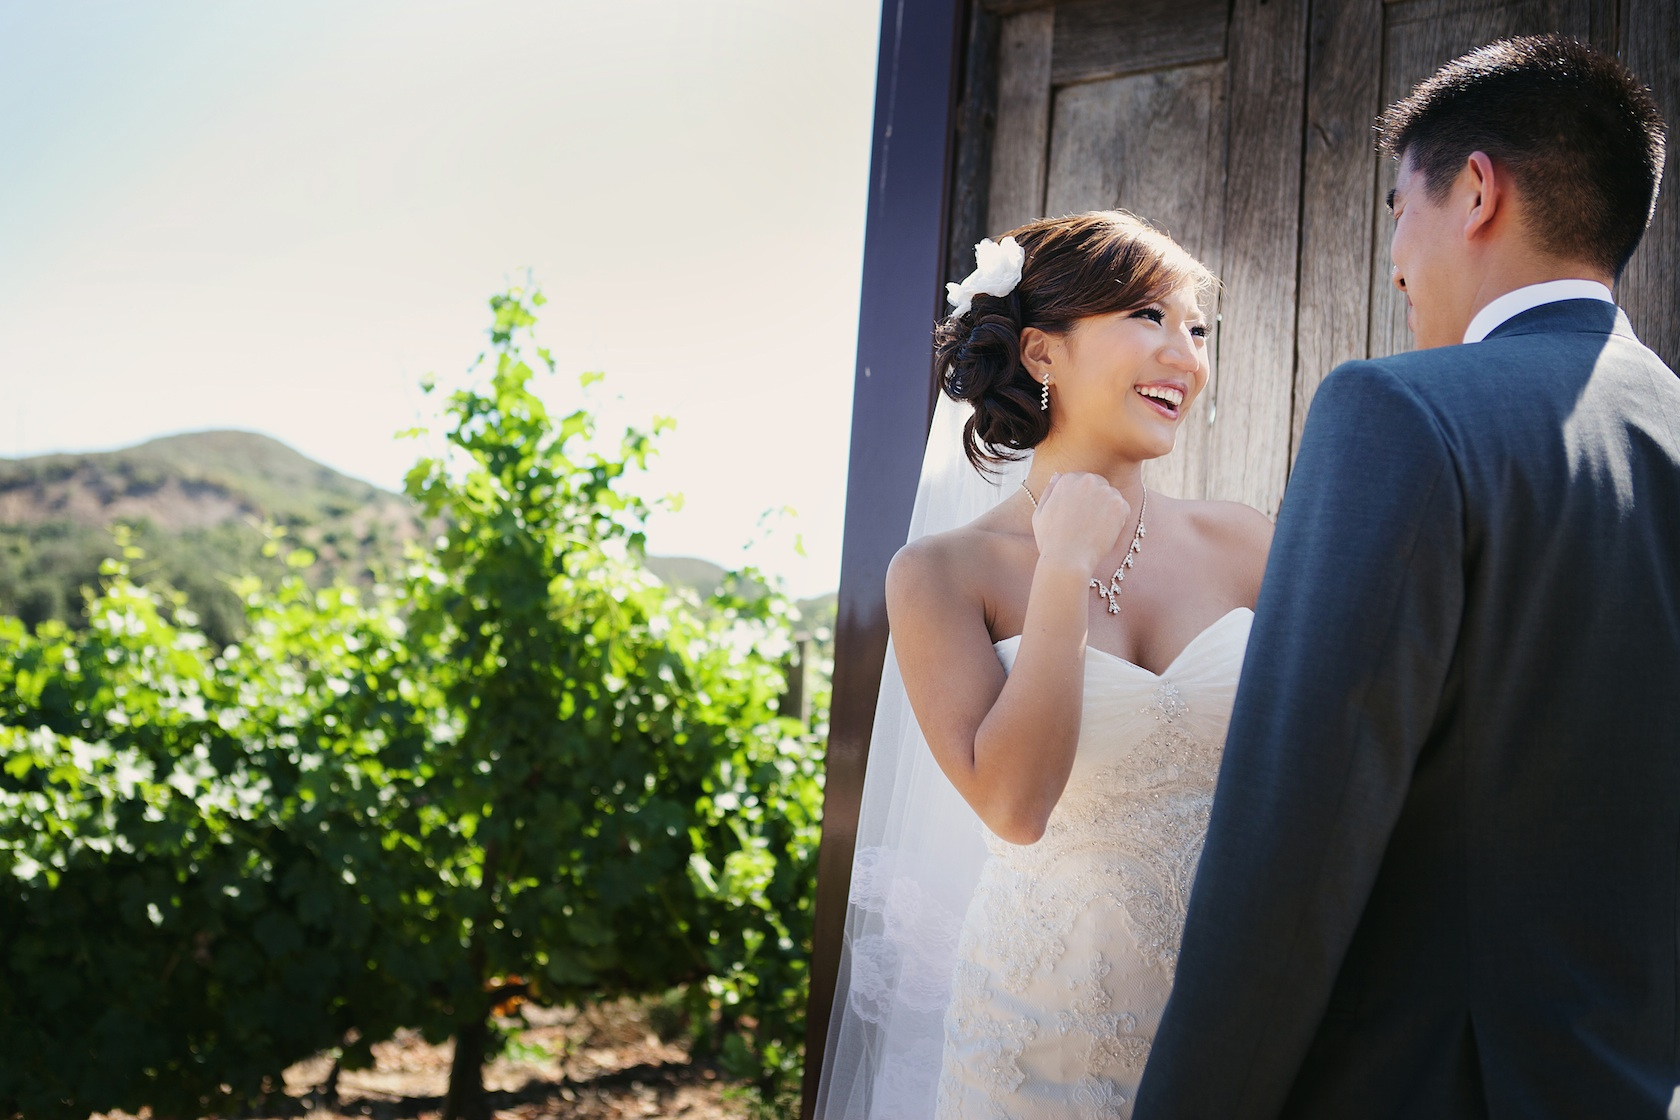 Creative-first-look-wedding-photo-outdoor-weddings-california-4.original